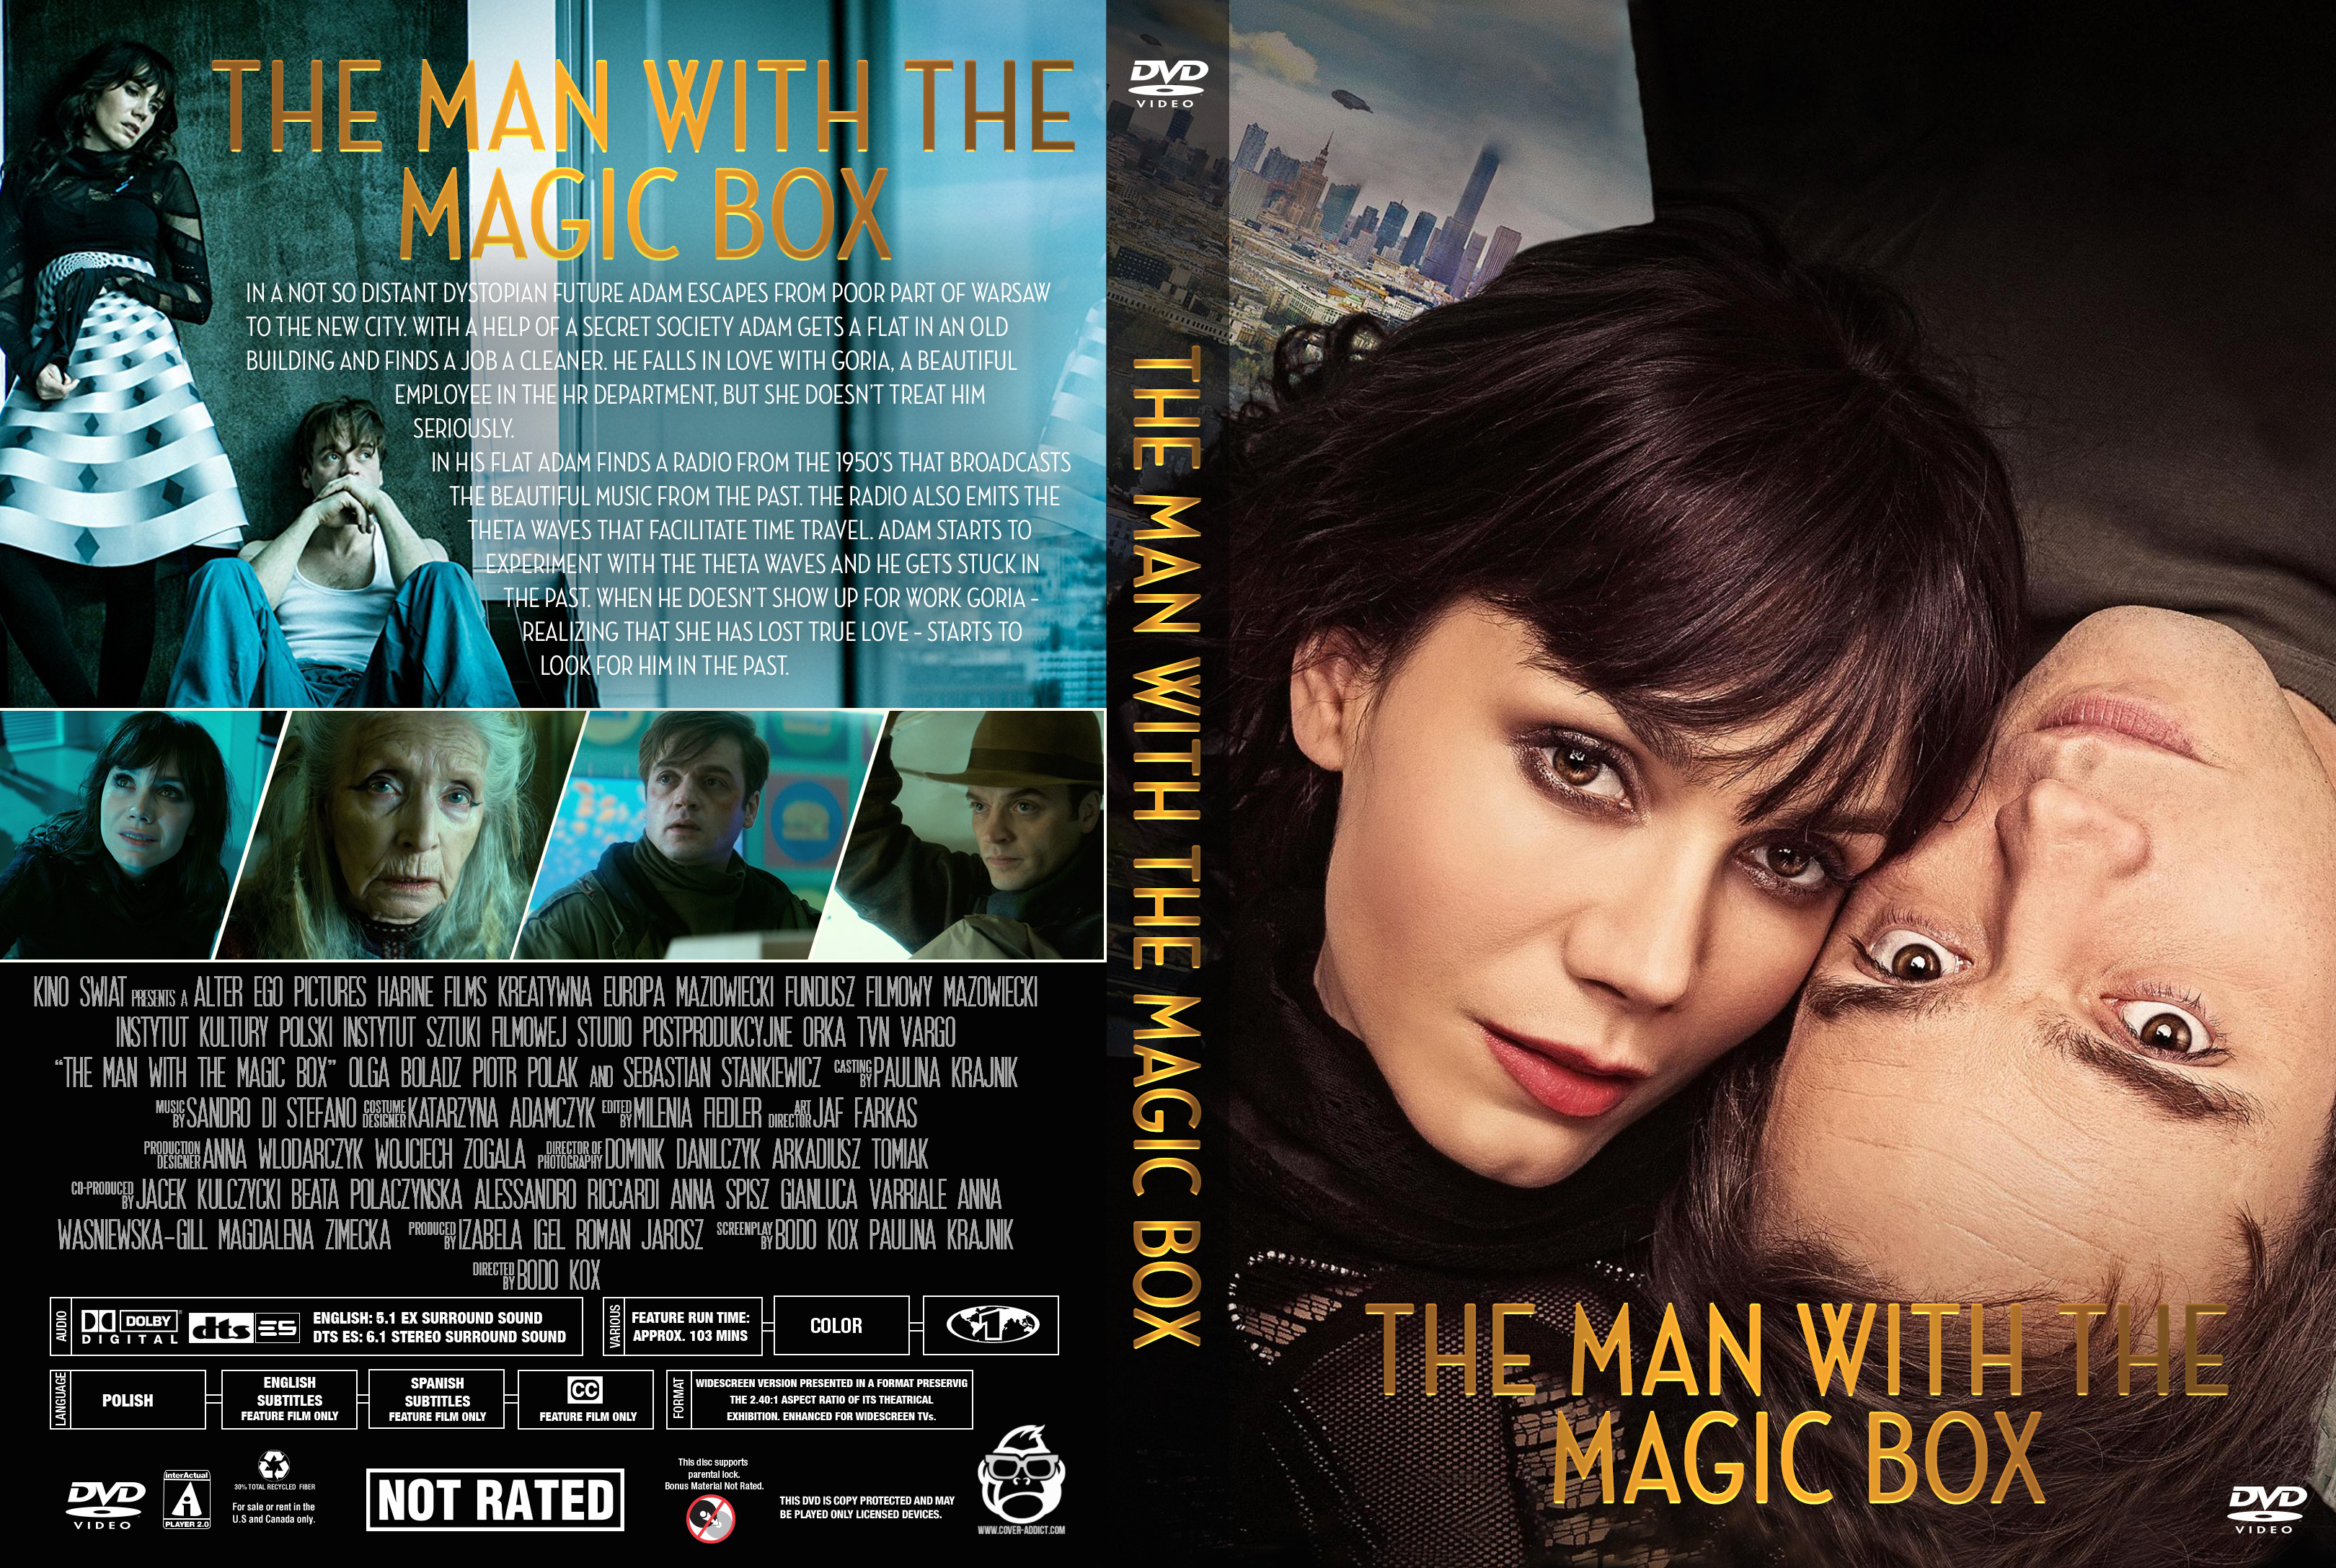 the man with the magic box (2017) subtitles